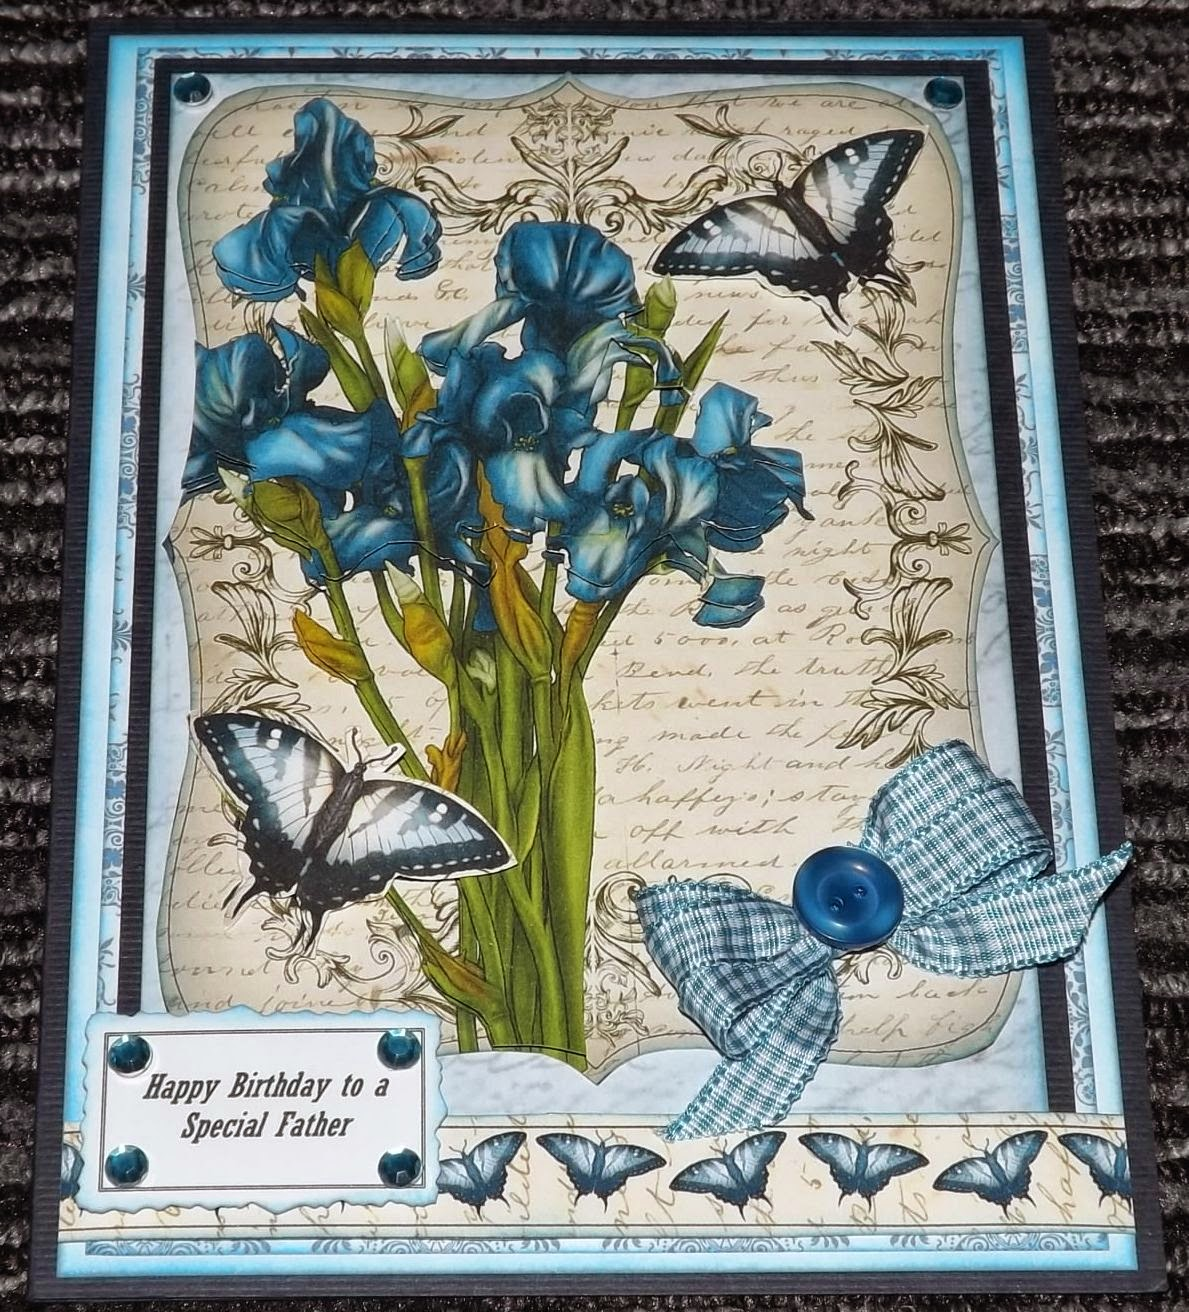 Kym S Crafty Cards Happy Birthday To A Special Father